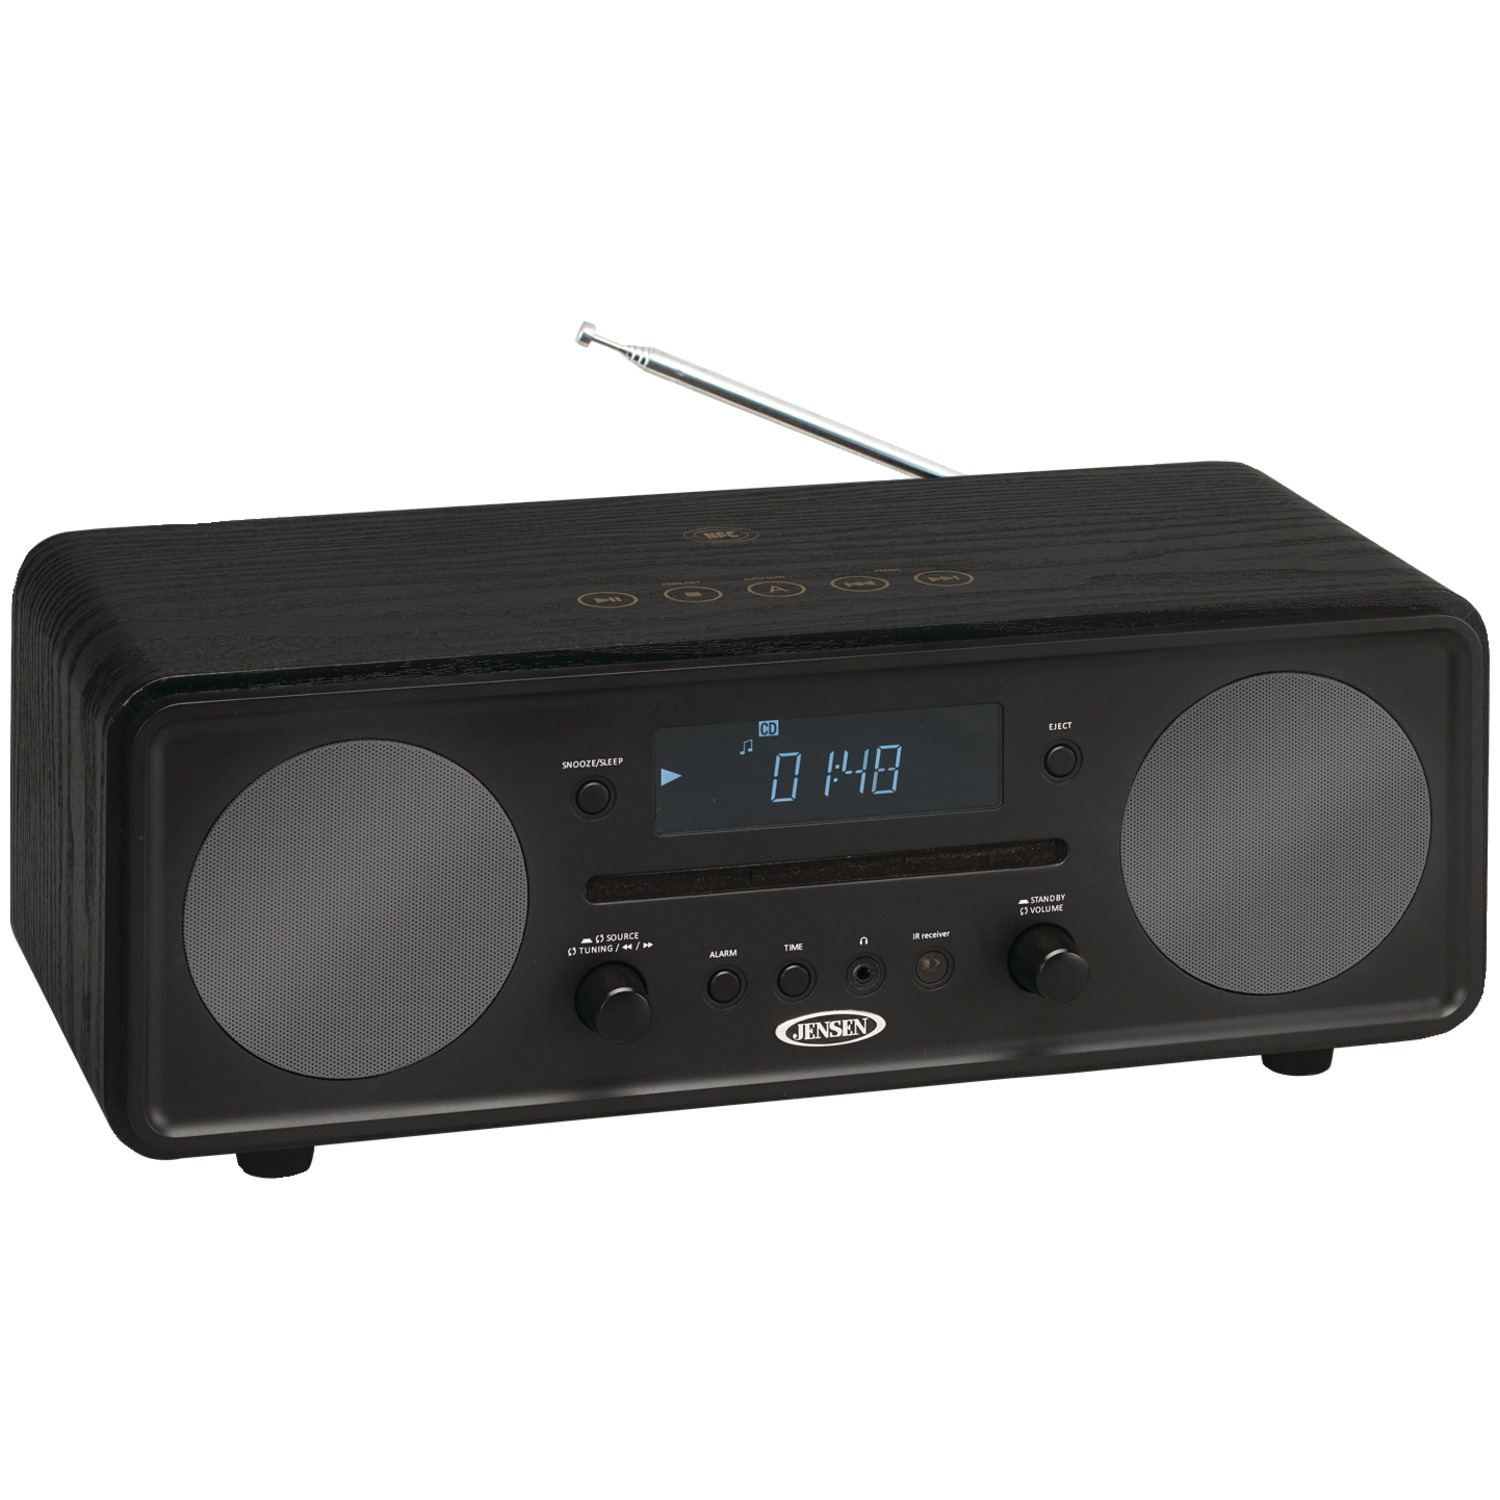 JENSEN JBS-600 Bluetooth Digital Music System with CD Player by Jensen